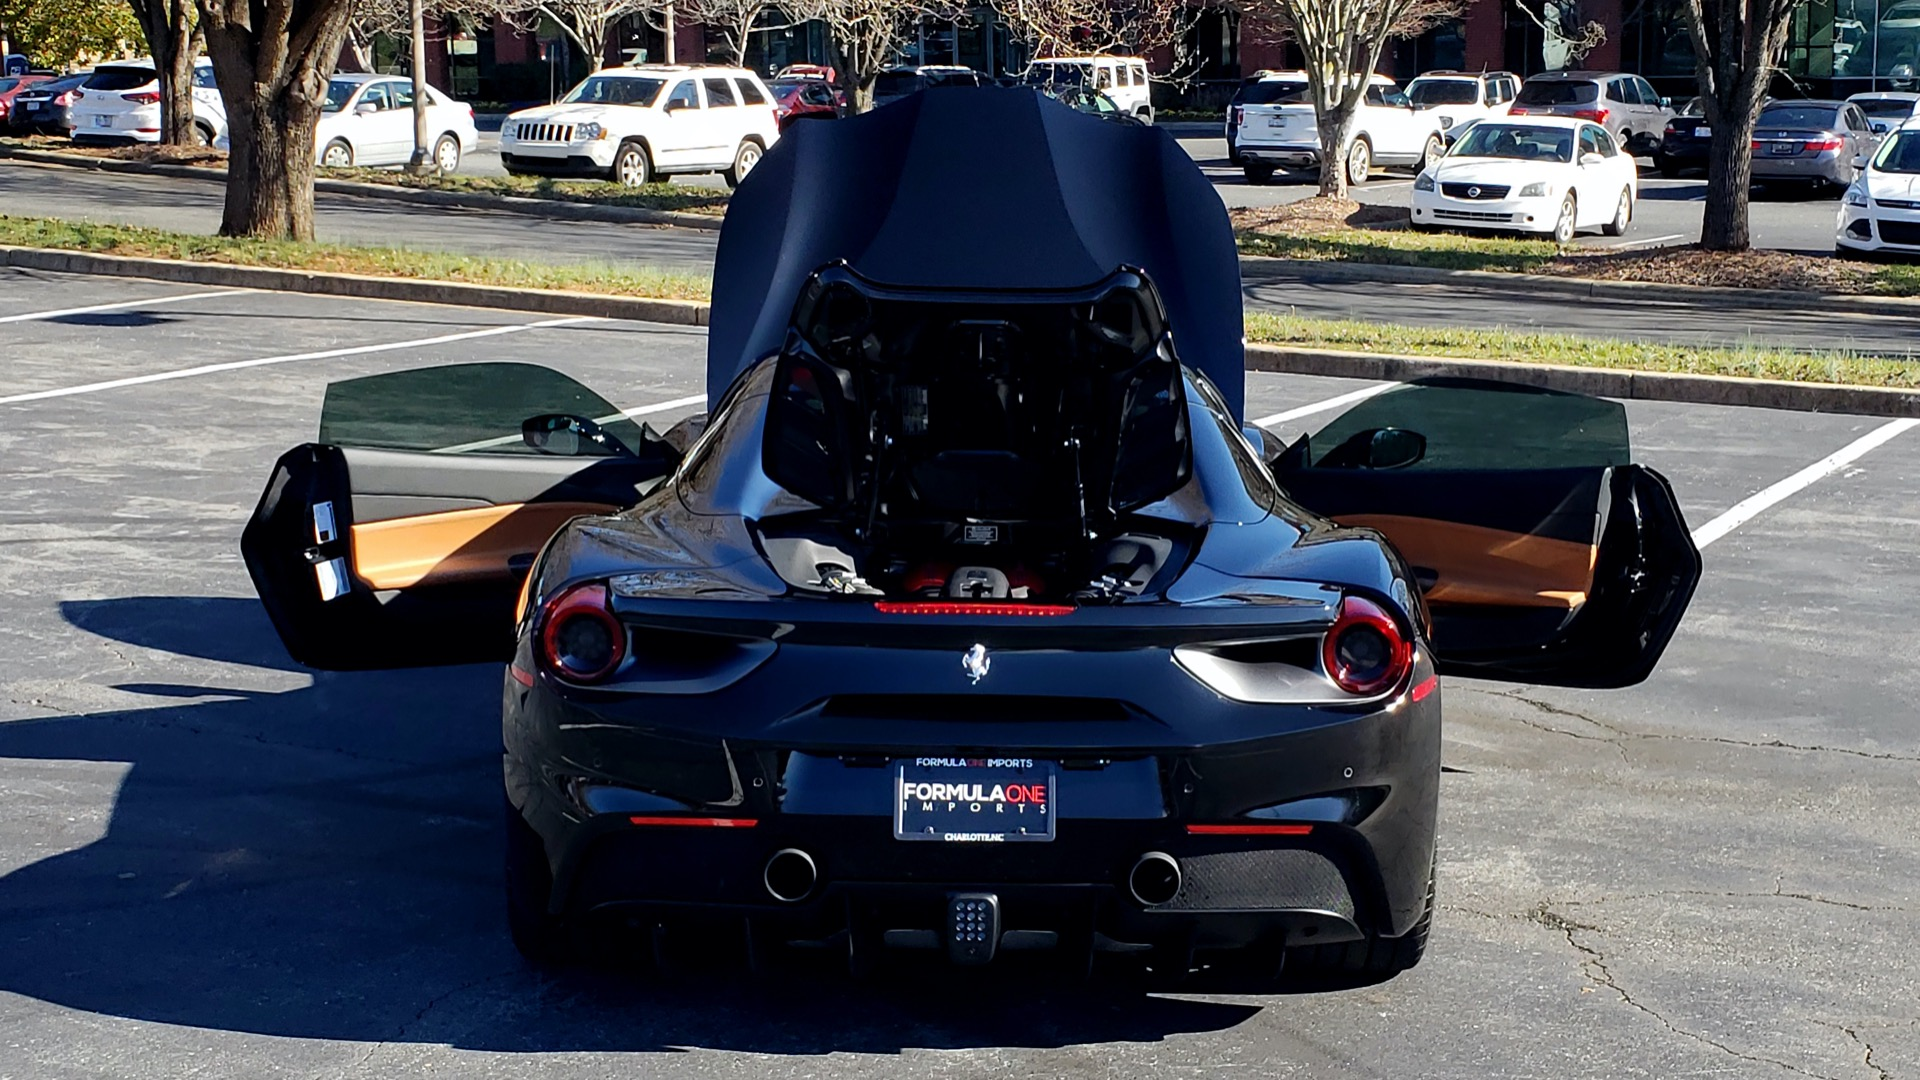 Used 2017 Ferrari 488 Spider SUSP LFT / JBL SND / SPRT EXH / F1 TRANS for sale $315,000 at Formula Imports in Charlotte NC 28227 25